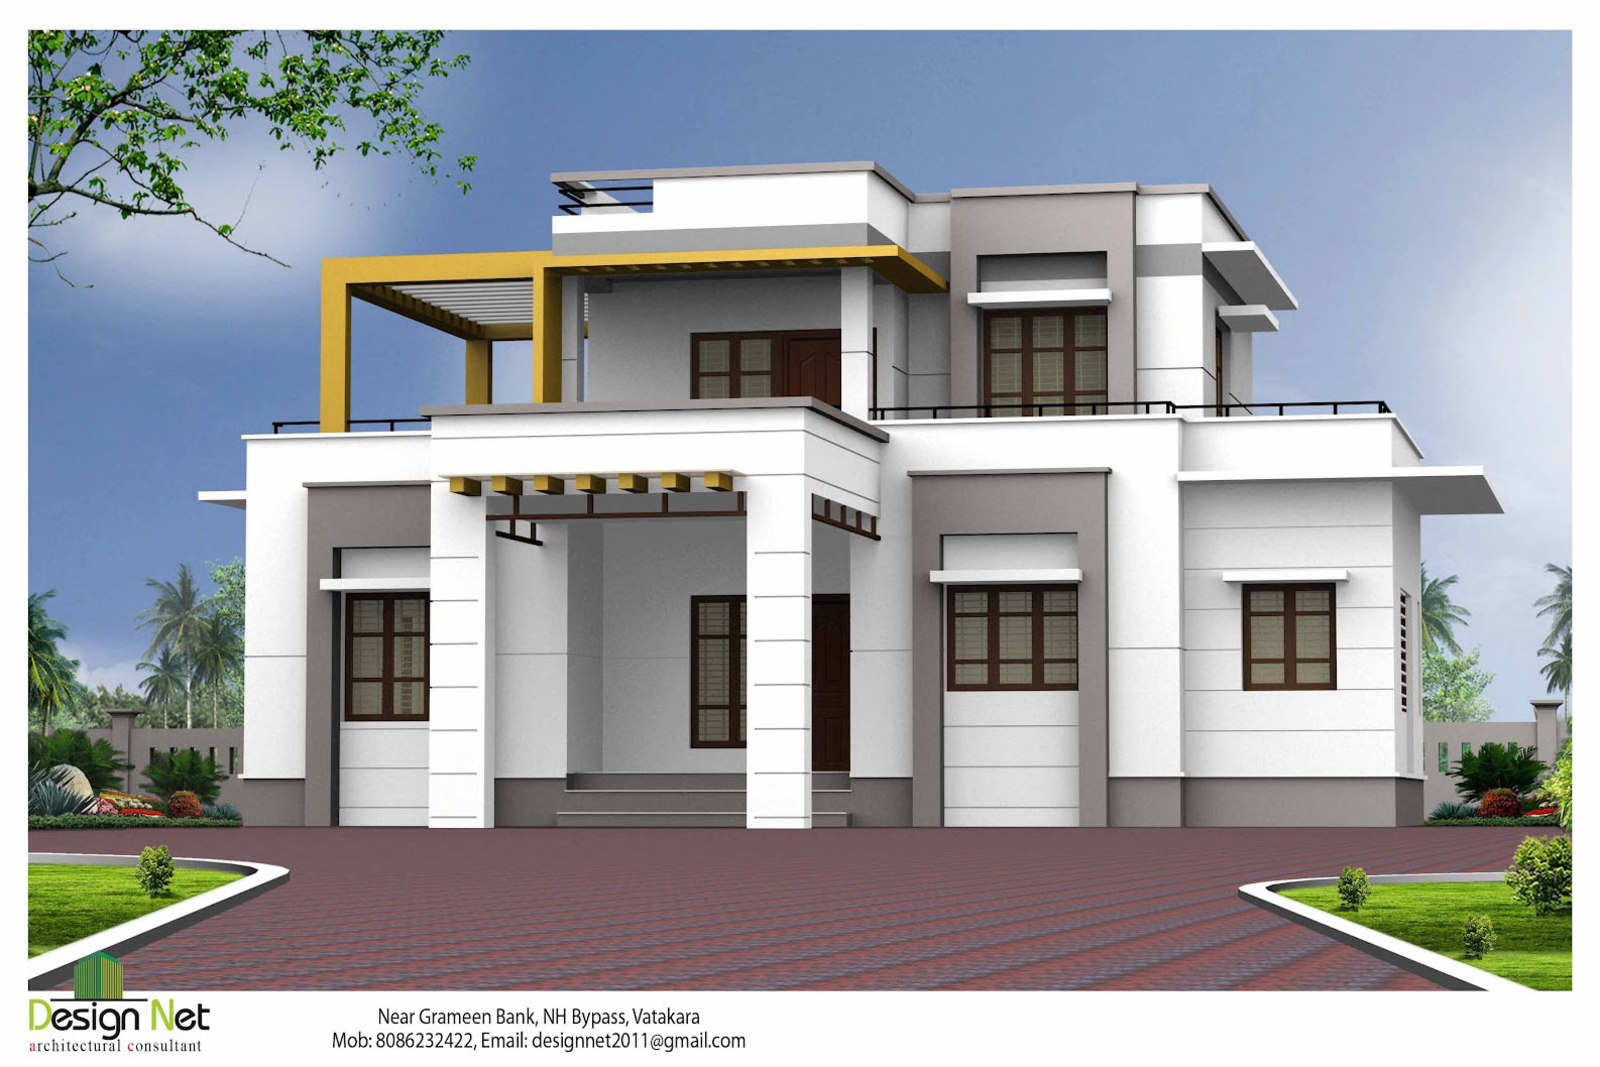 Image gallery outside house designs for Exterior design building